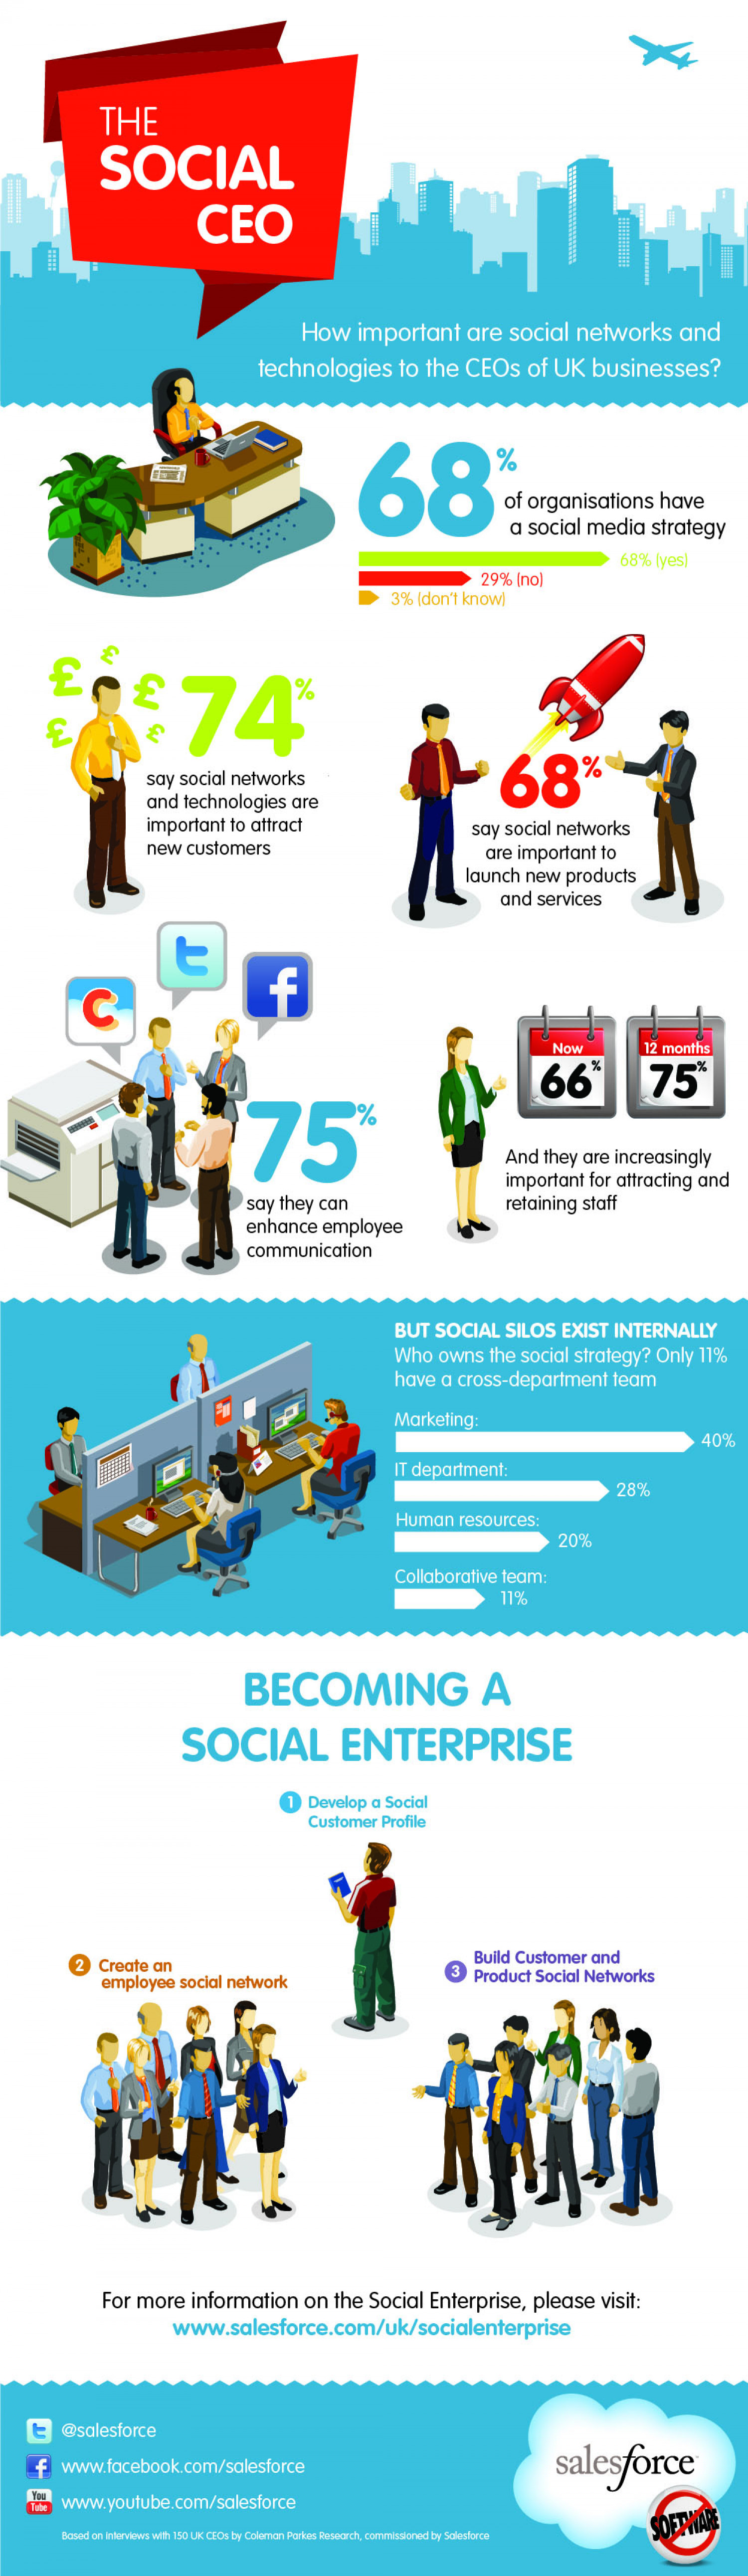 The Social CEO Infographic